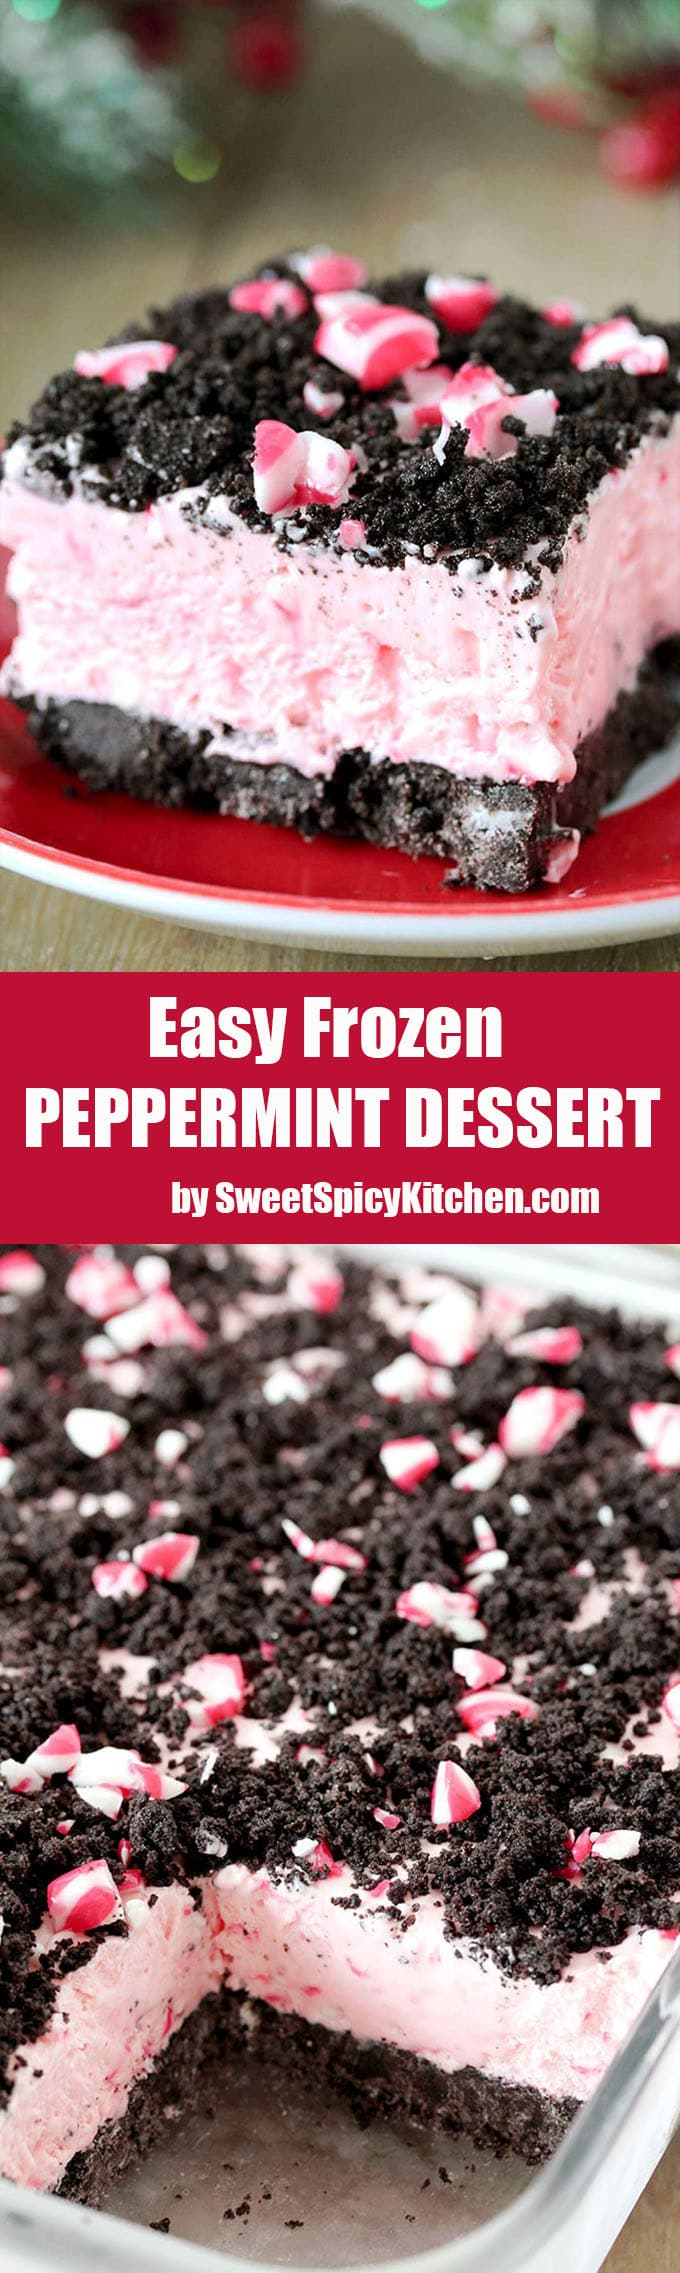 Easy Frozen Peppermint Dessert – this quick and easy holiday treat is made of peppermint candies, cream cheese, whipped cream and sweetened condensed milk, it has an Oreo layer and is topped with crushed peppermint candies and Oreos